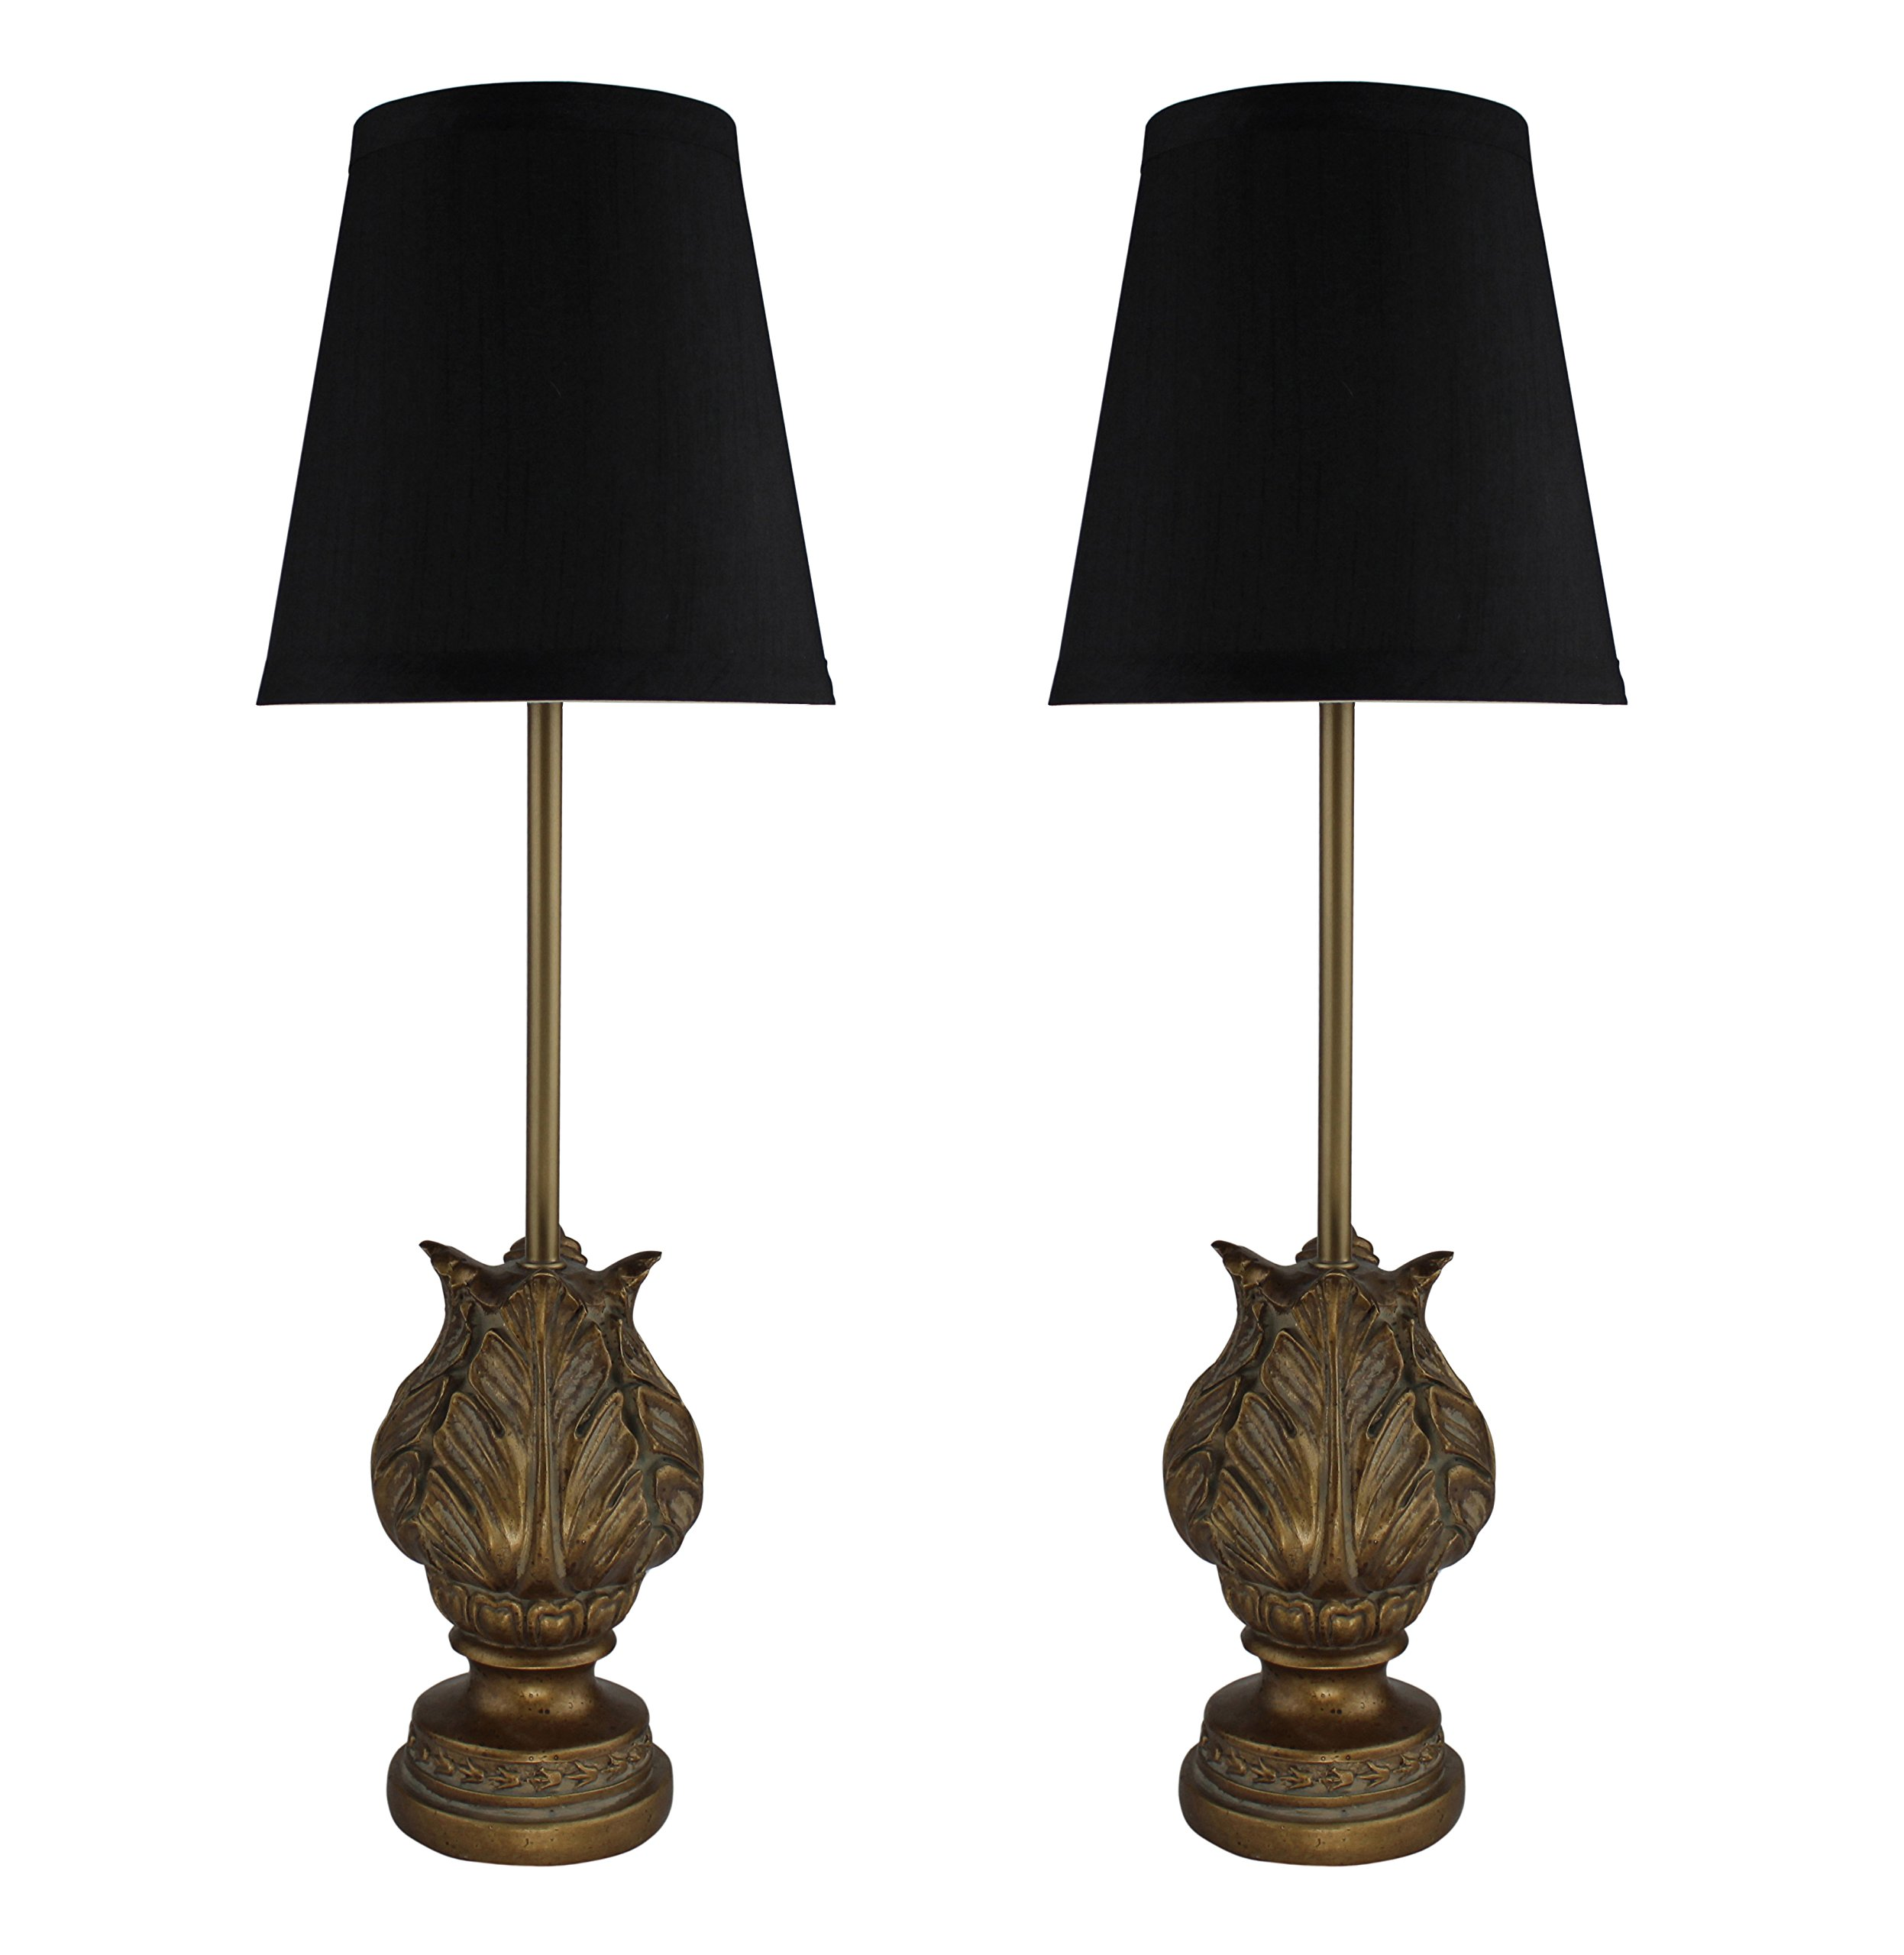 Urbanest Set of 2 Charlotte Mini Buffet Lamps in Paris Gold with Black Shades